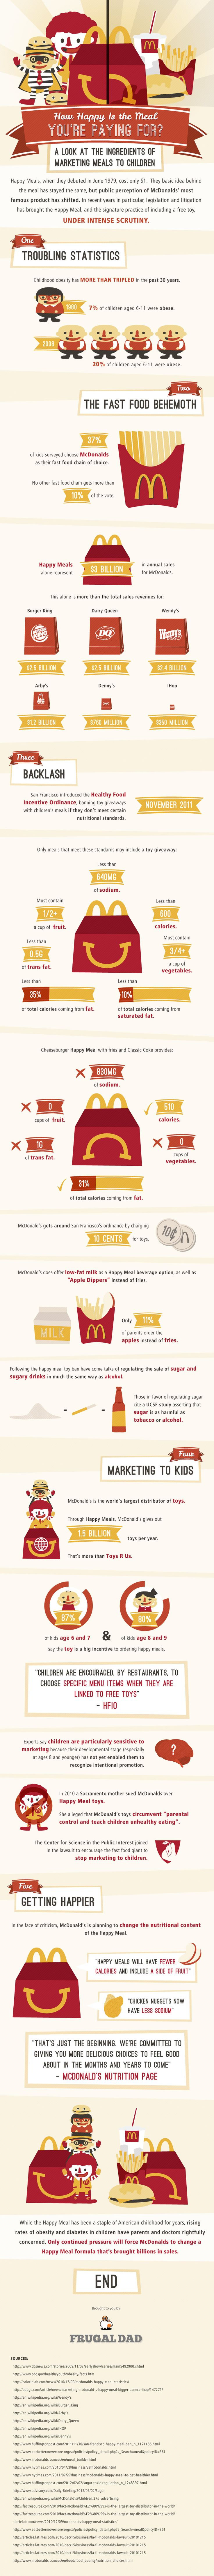 Disturbing Facts About Happy Meals #Infographic :: Did you know that childhood #obesity has tripled in the last 30 years? Or that McDonald's sells $3 billion worth of Happy Meals to kids every year?! (37 percent of kids say that #McDonald's is their favorite fast-food chain, too.)